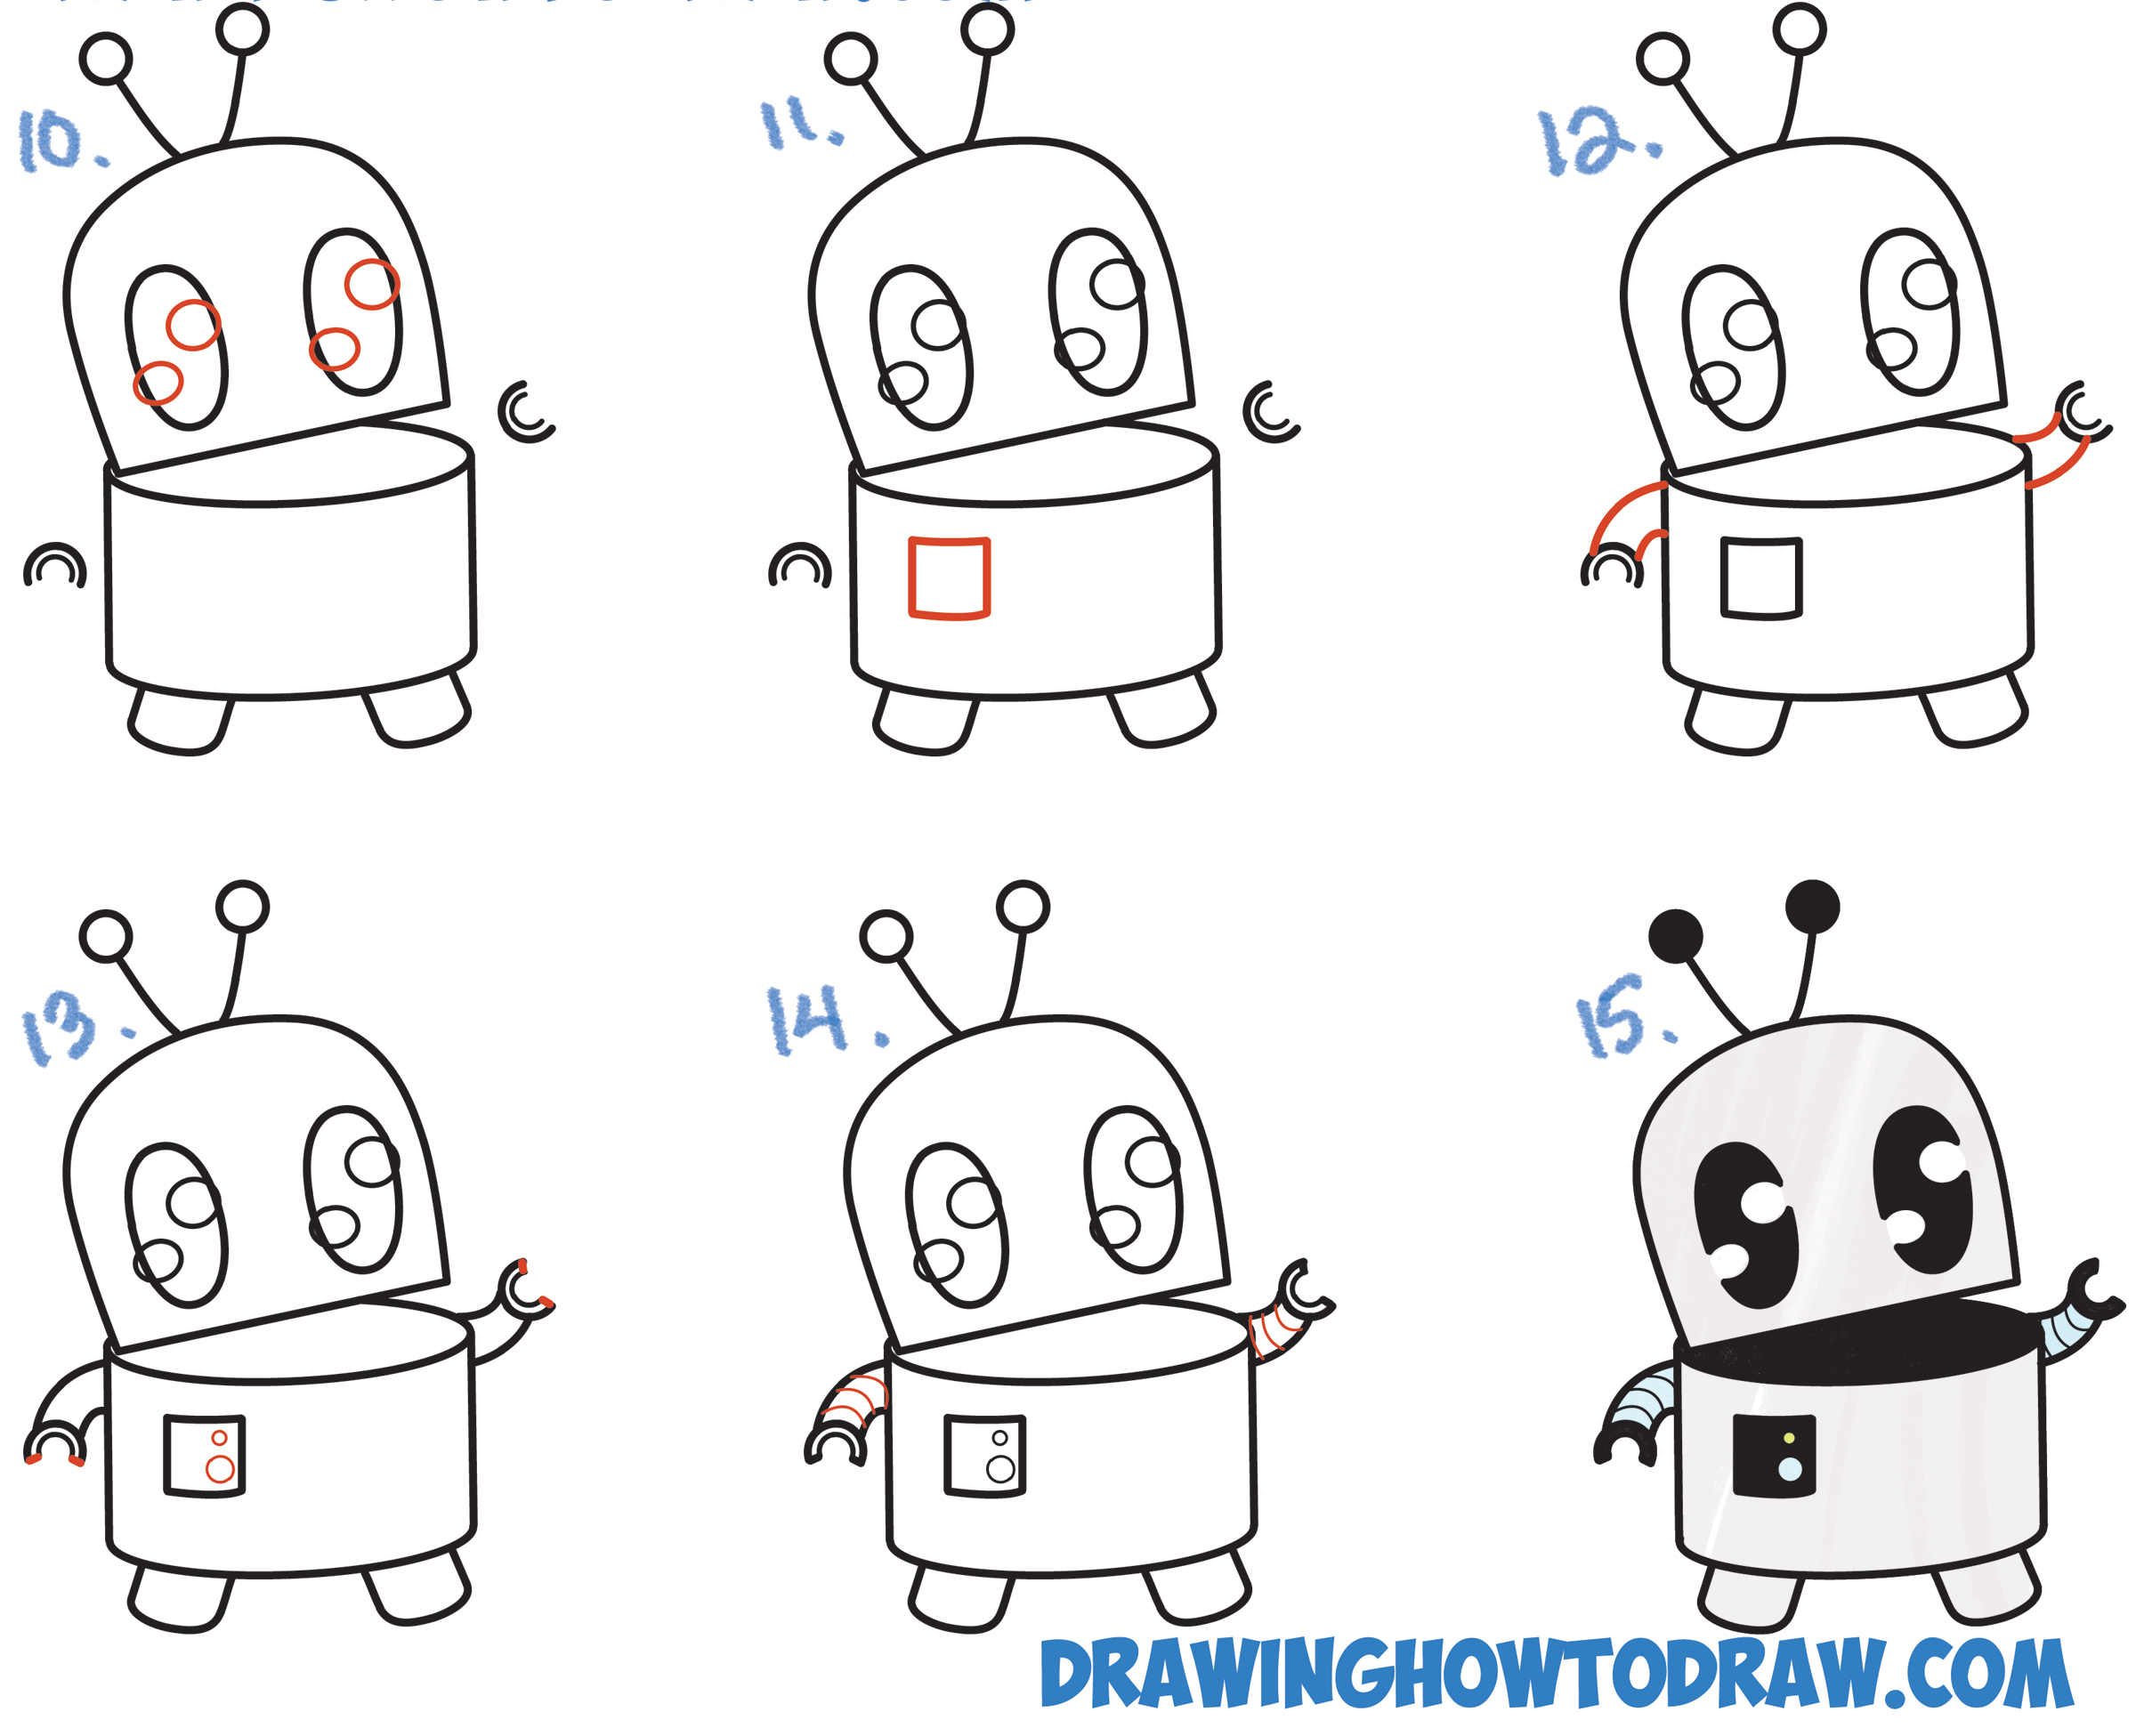 How To Draw A Cute Cartoon Robot Easy Step By Step Drawing Tutorial